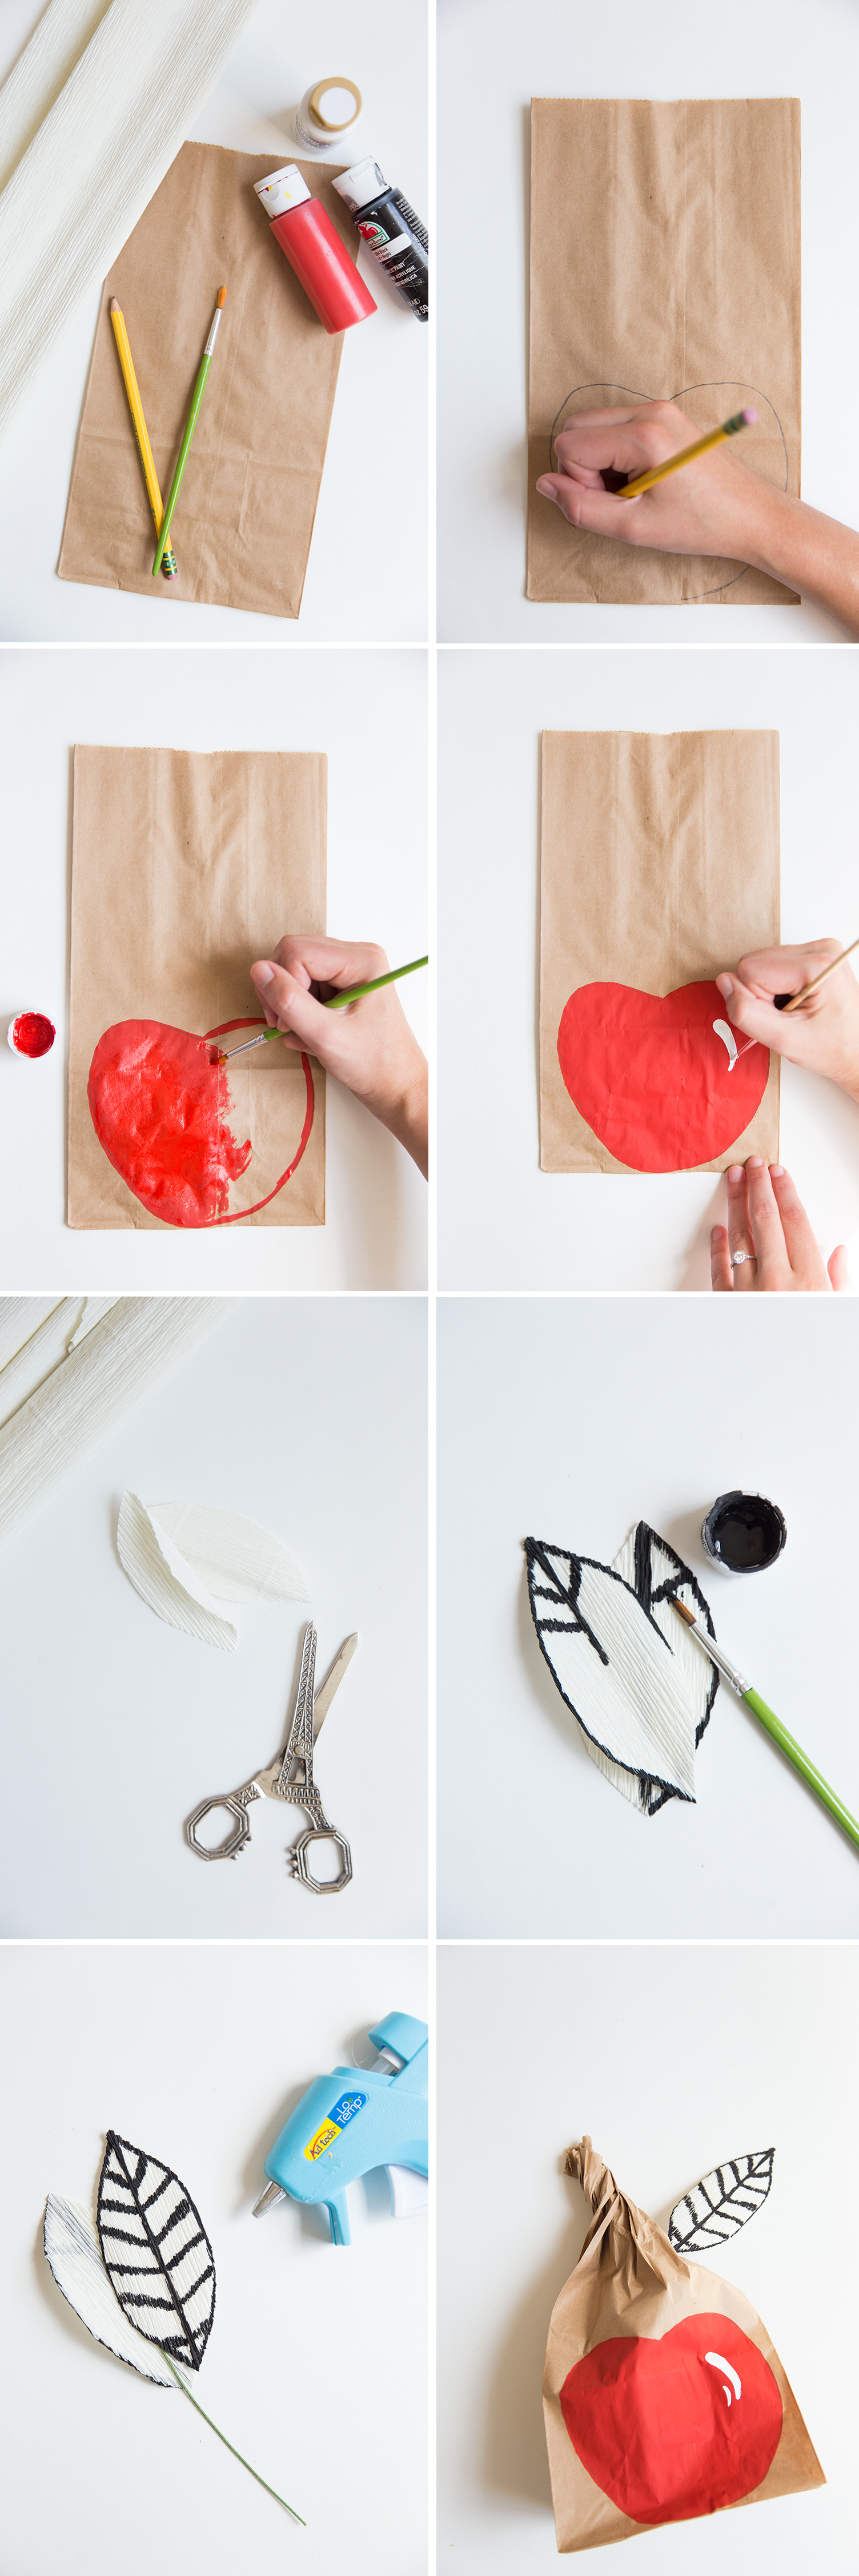 DIY apple lunch sack